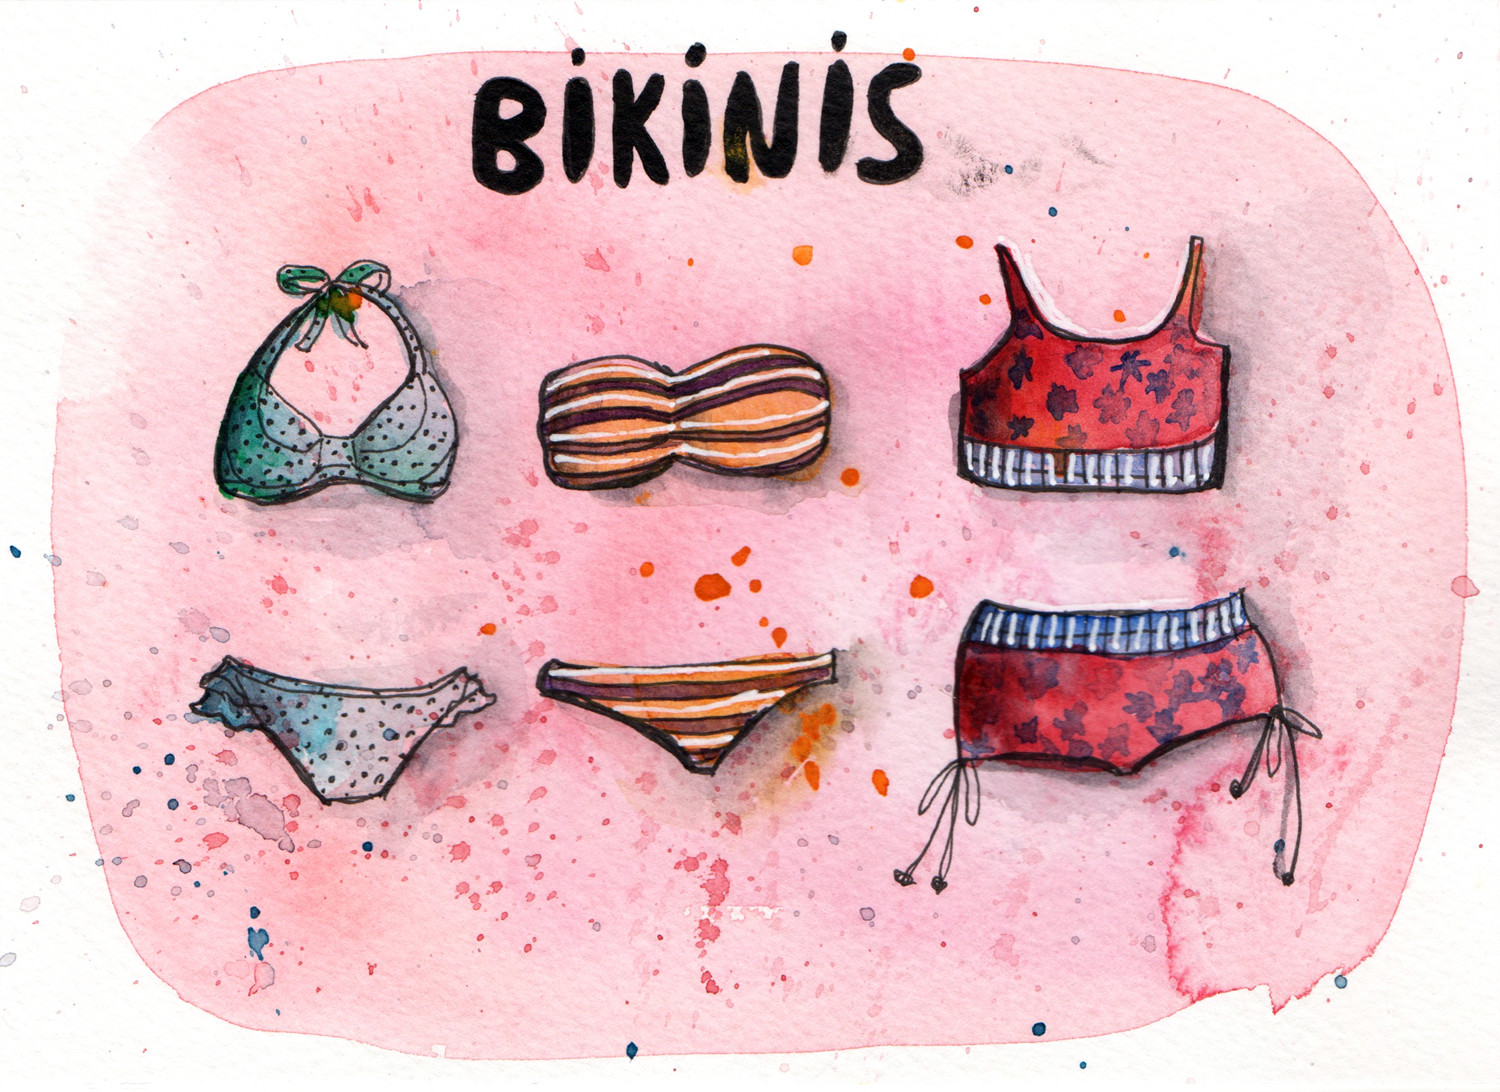 Daily Paintings by Sophie Peanut - Bikinis in pen and watercolour